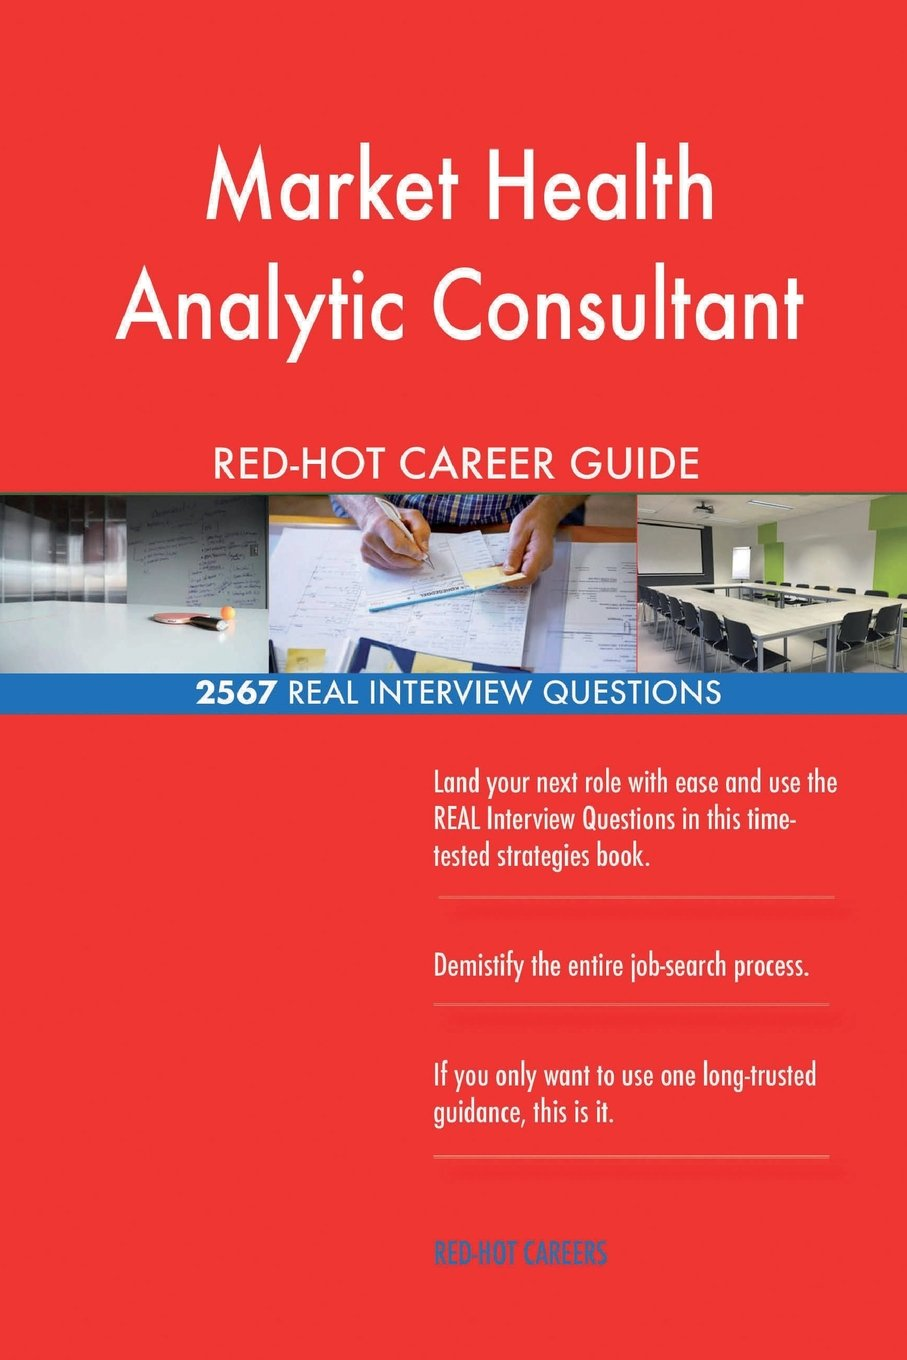 Download Market Health Analytic Consultant RED-HOT Career; 2567 REAL Interview Questions PDF